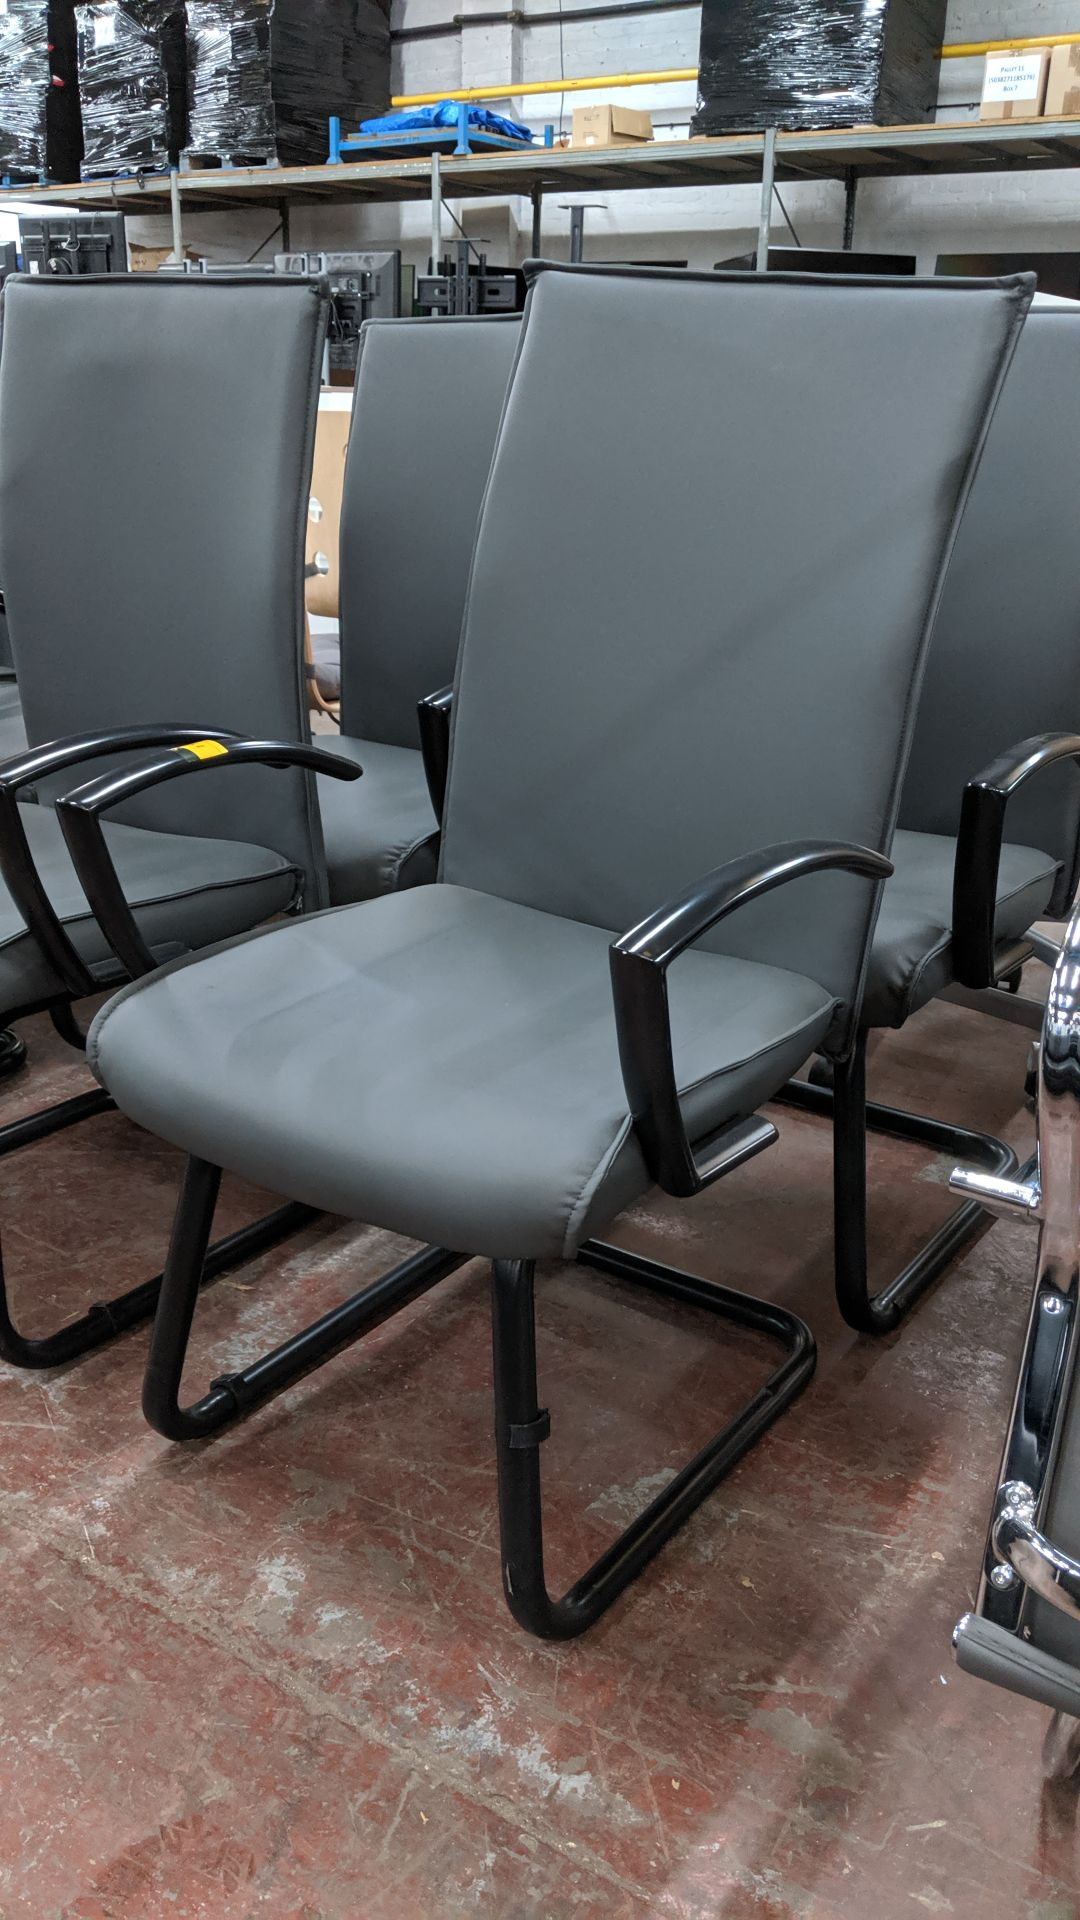 Lot 351 - 4 off black metal cantilever framed executive/meeting chairs with grey leather-look upholstery NB.